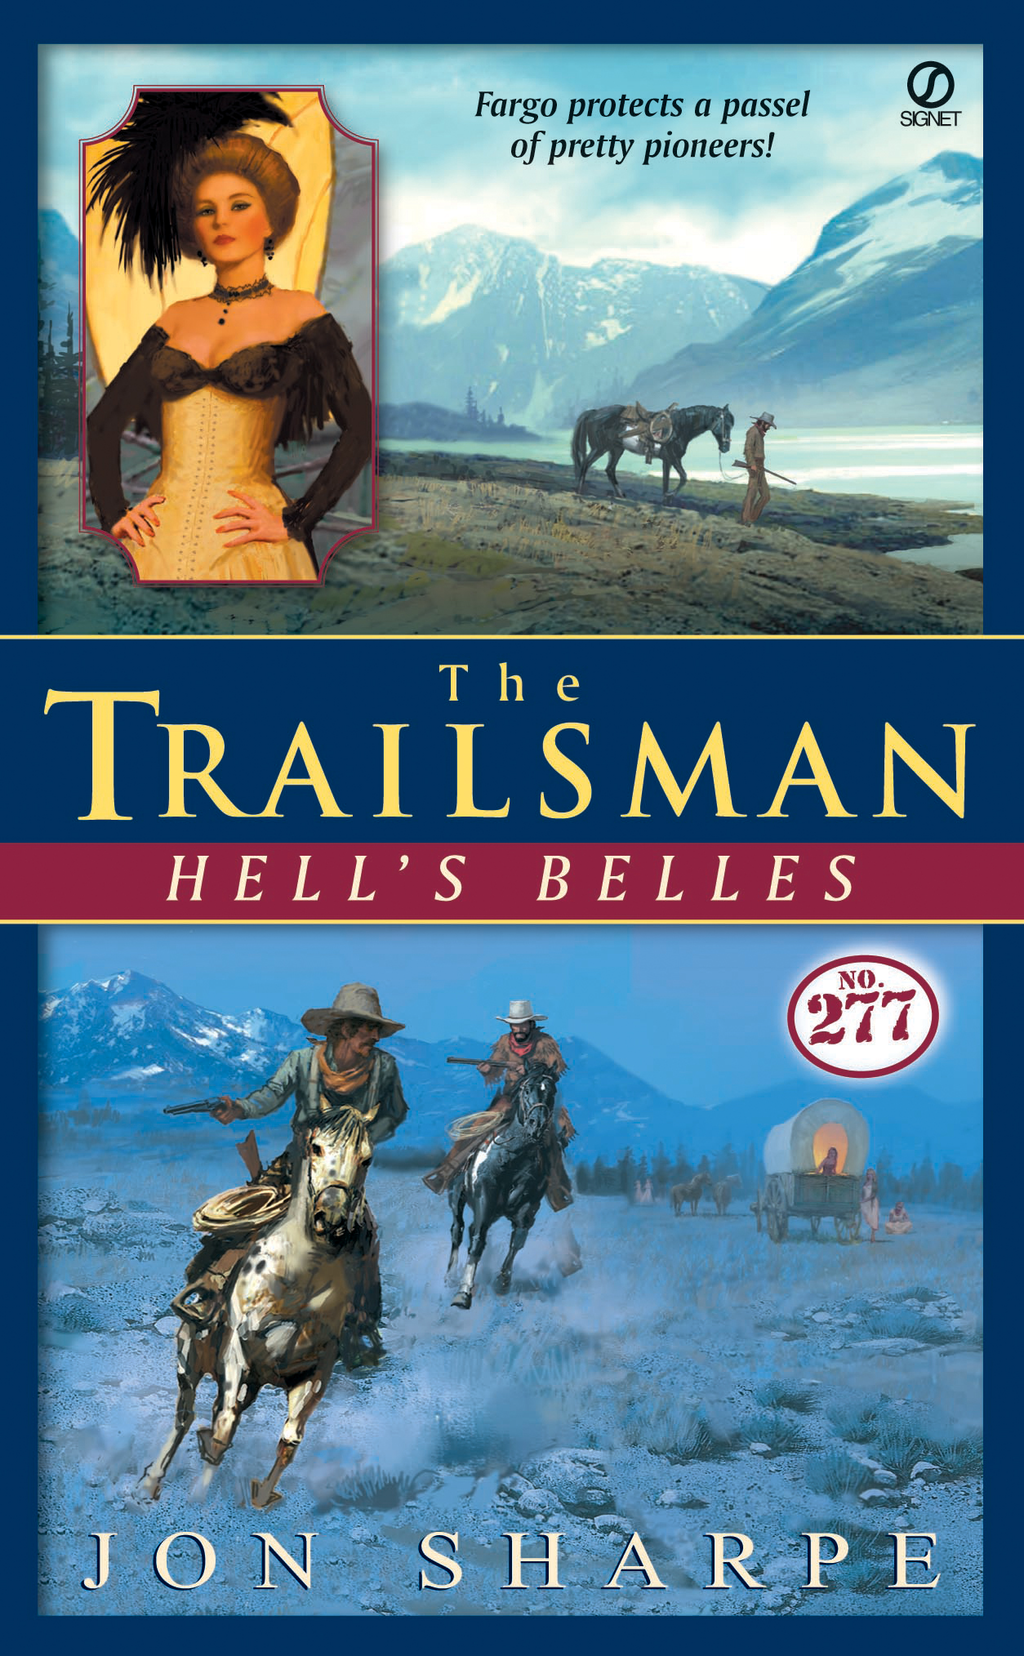 The Trailsman #277